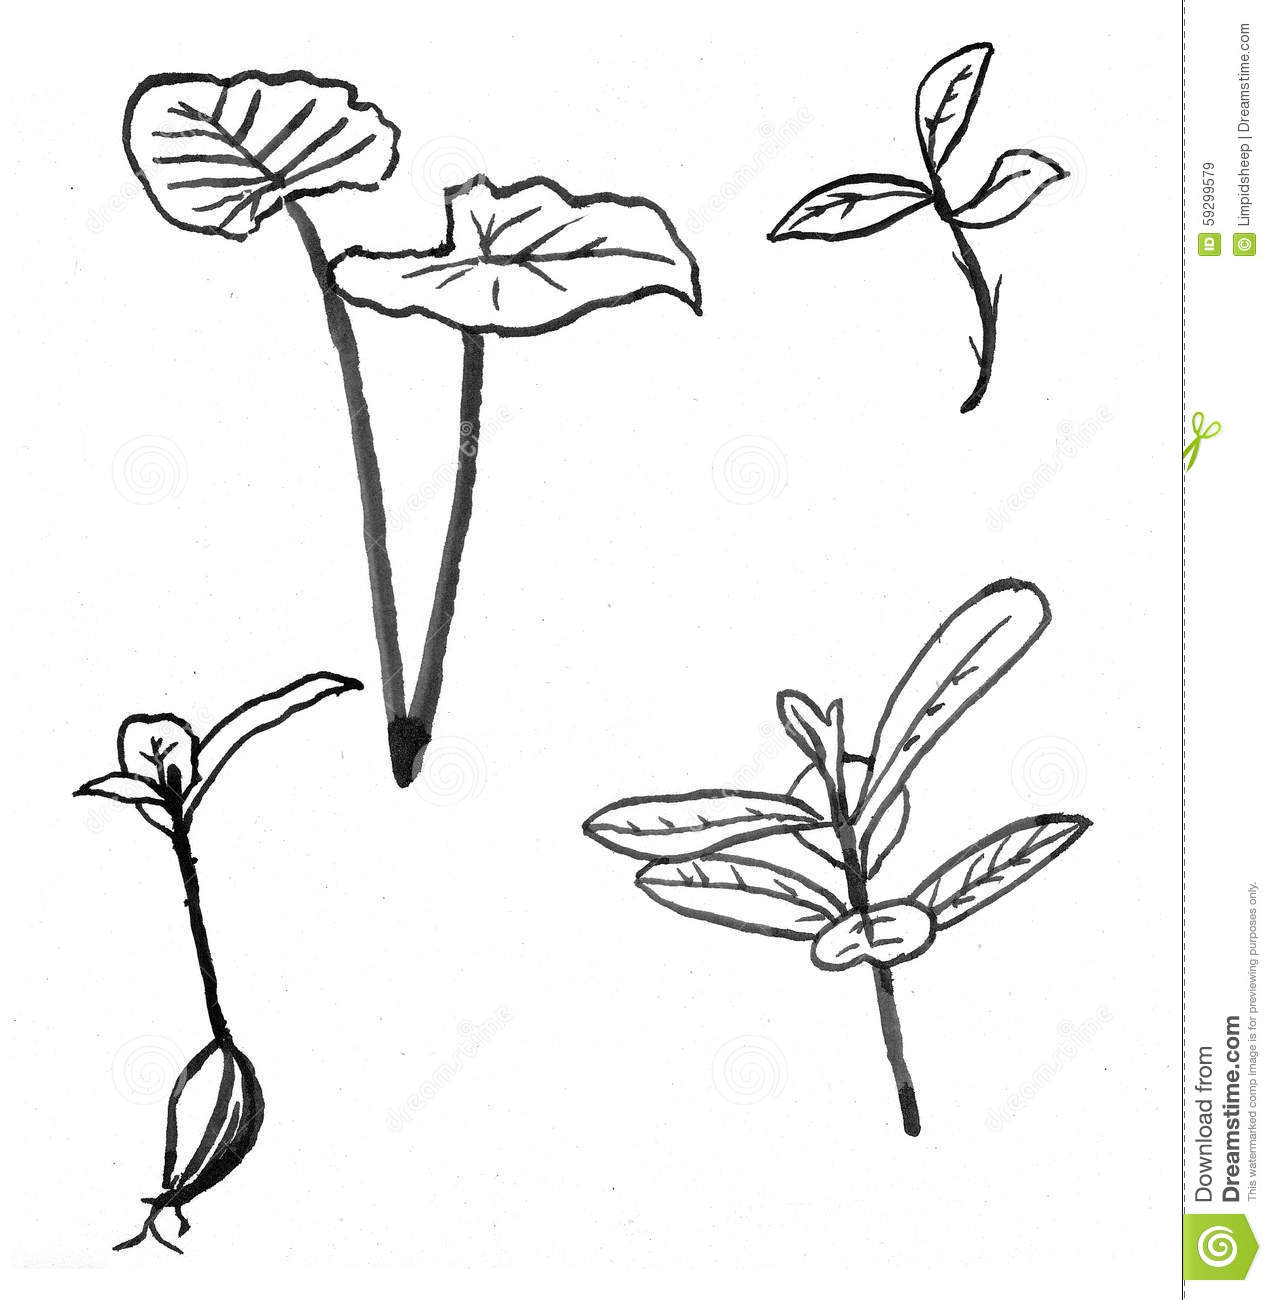 Flower Leaf Line Drawing : Leaves and flowers stock illustration image